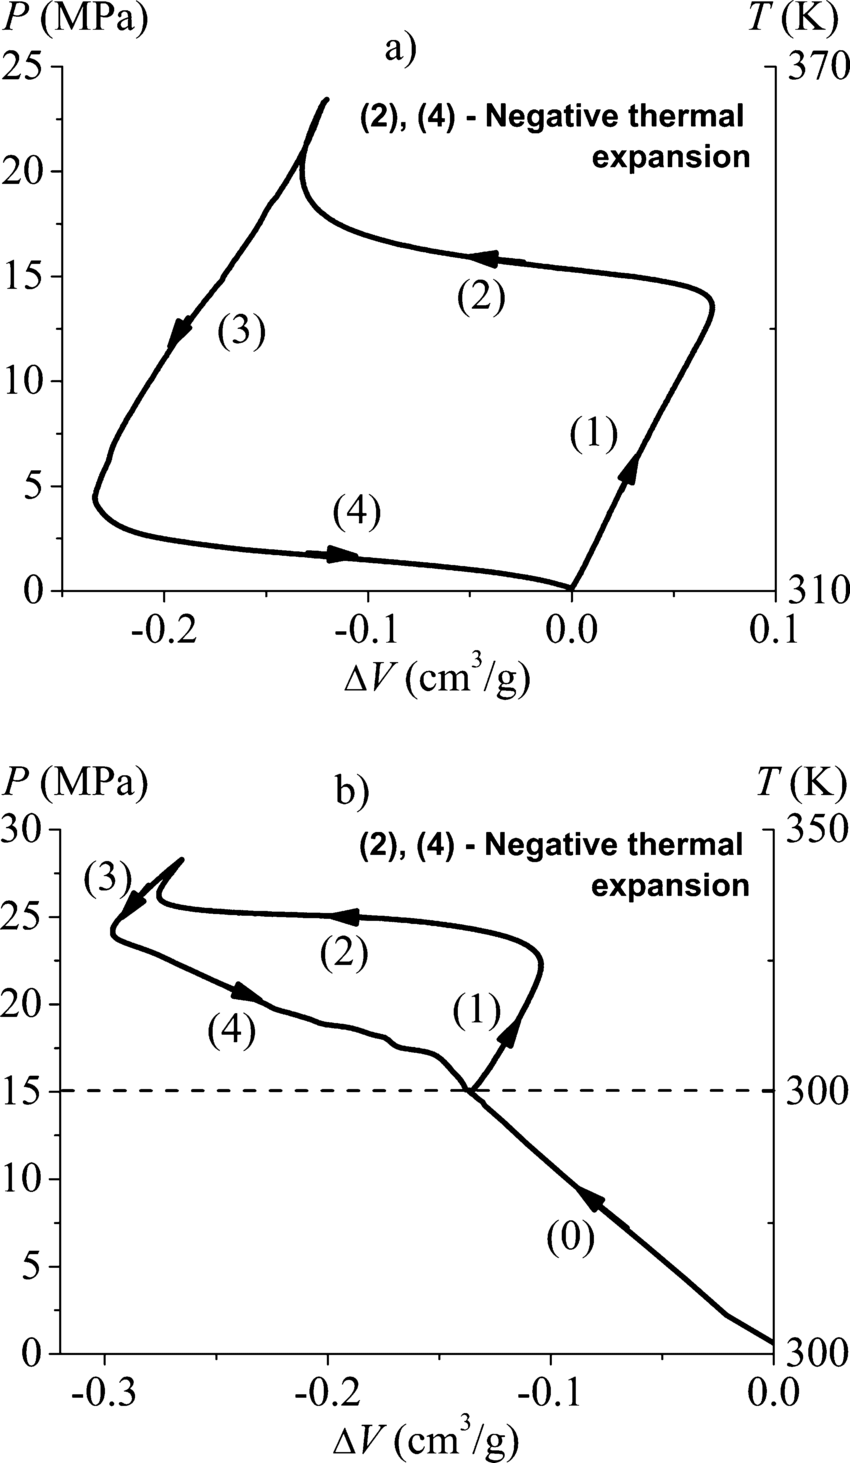 medium resolution of pv diagrams during heating cooling cycles of a wc8 water